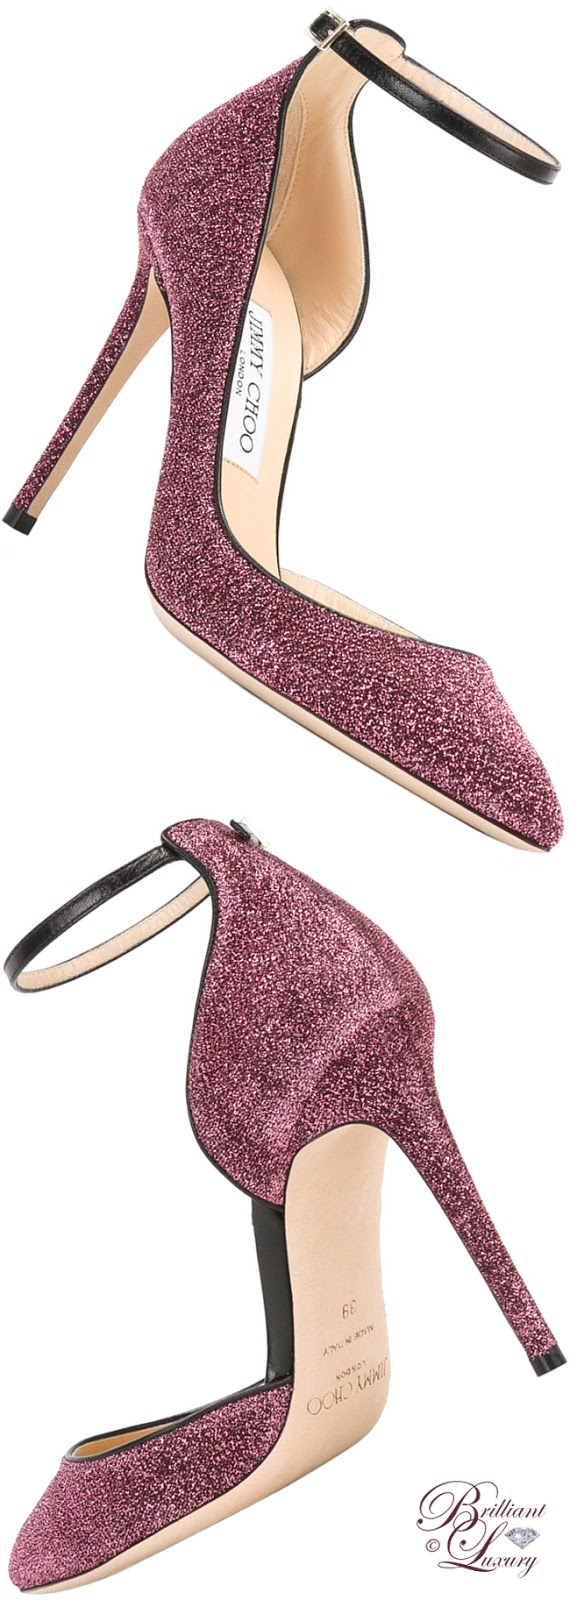 Brilliant Luxury ♦ Jimmy Choo Glitter Pumps